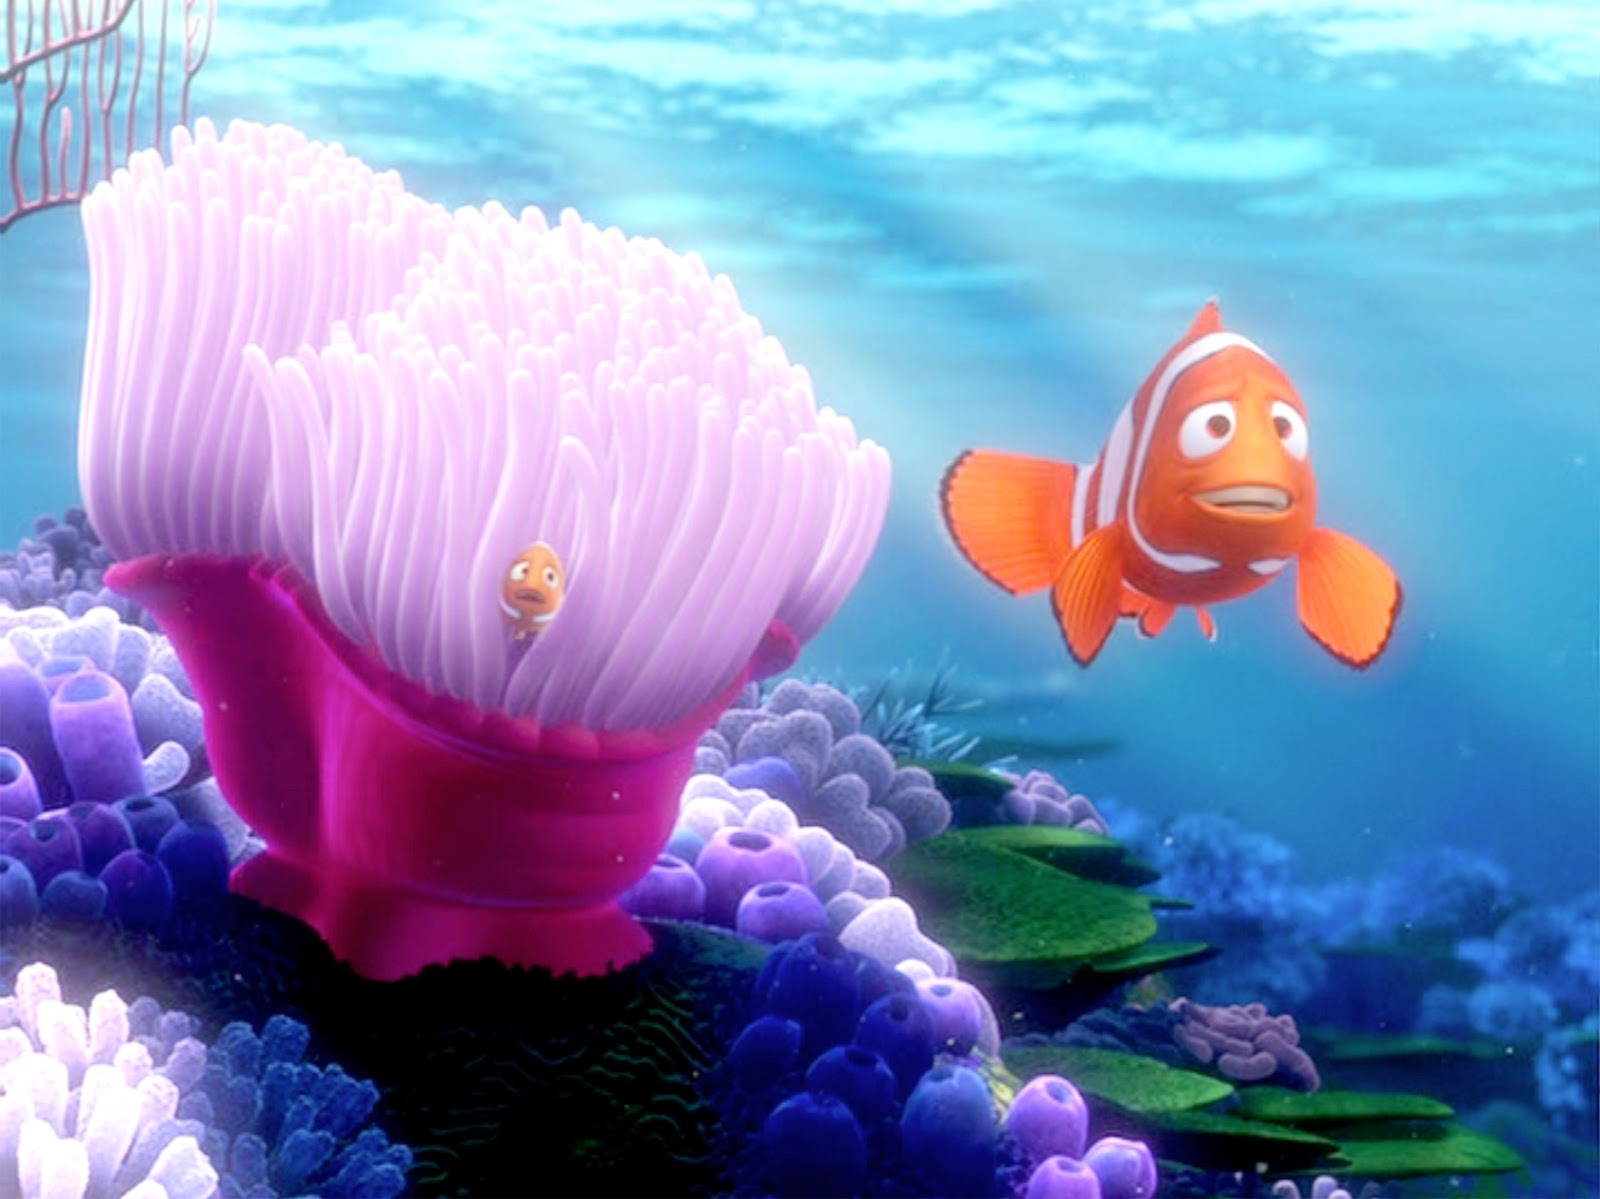 finding nemo marlin and dory relationship questions